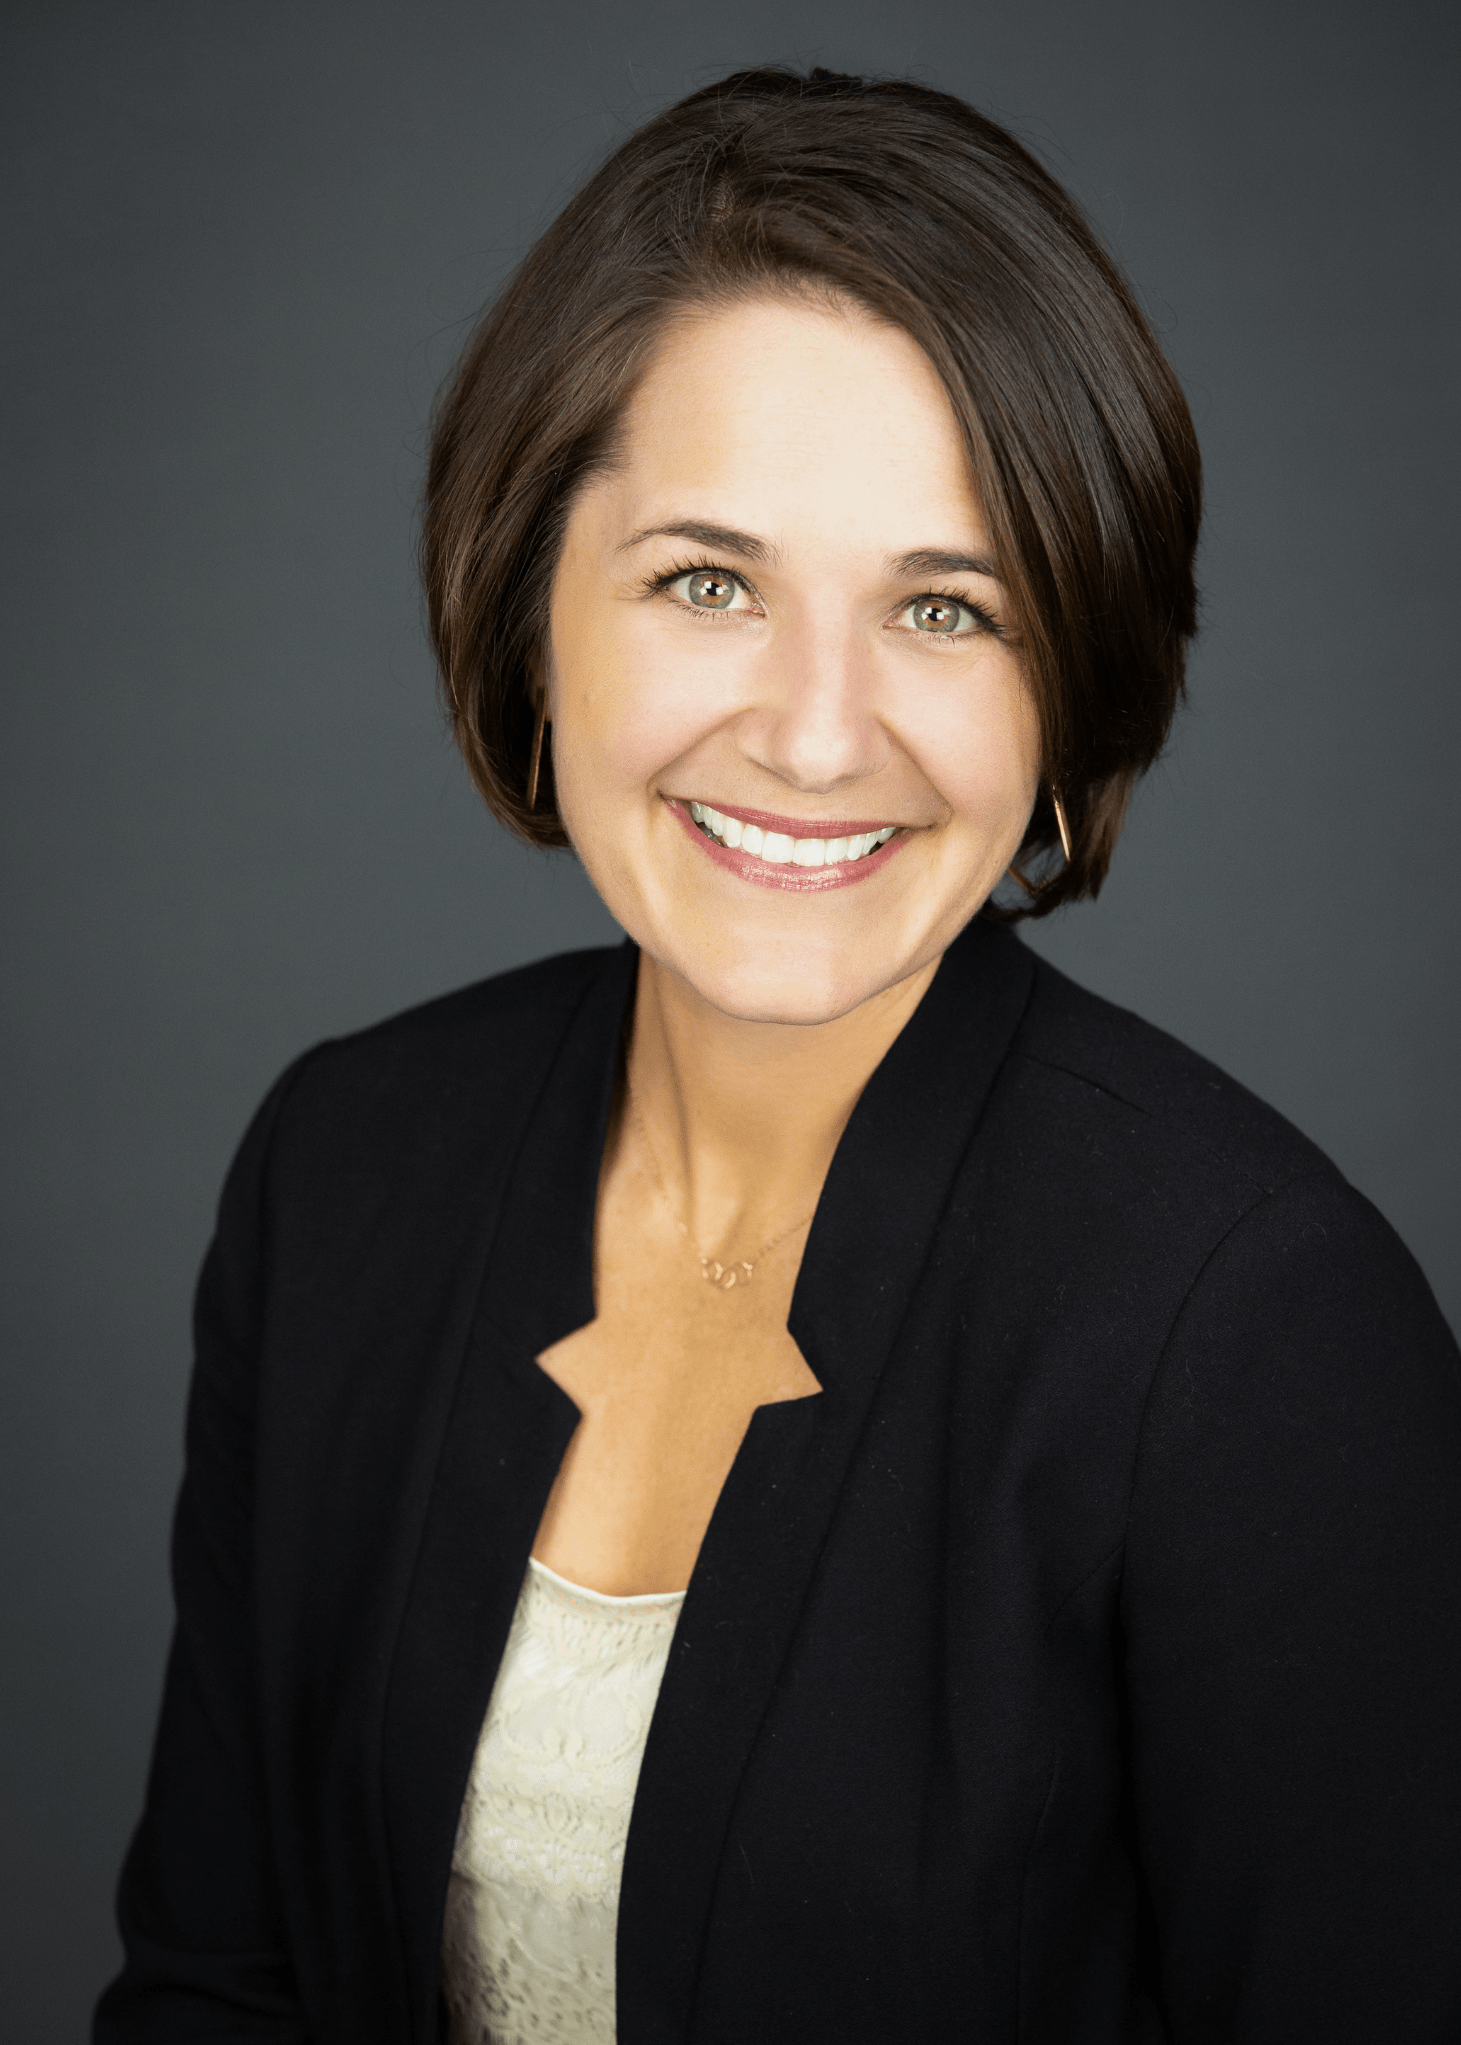 Kristen Stavros, Windermere, Real estate, whidbey island, oak harbor, trusted agent, homes, buy, sell, invest